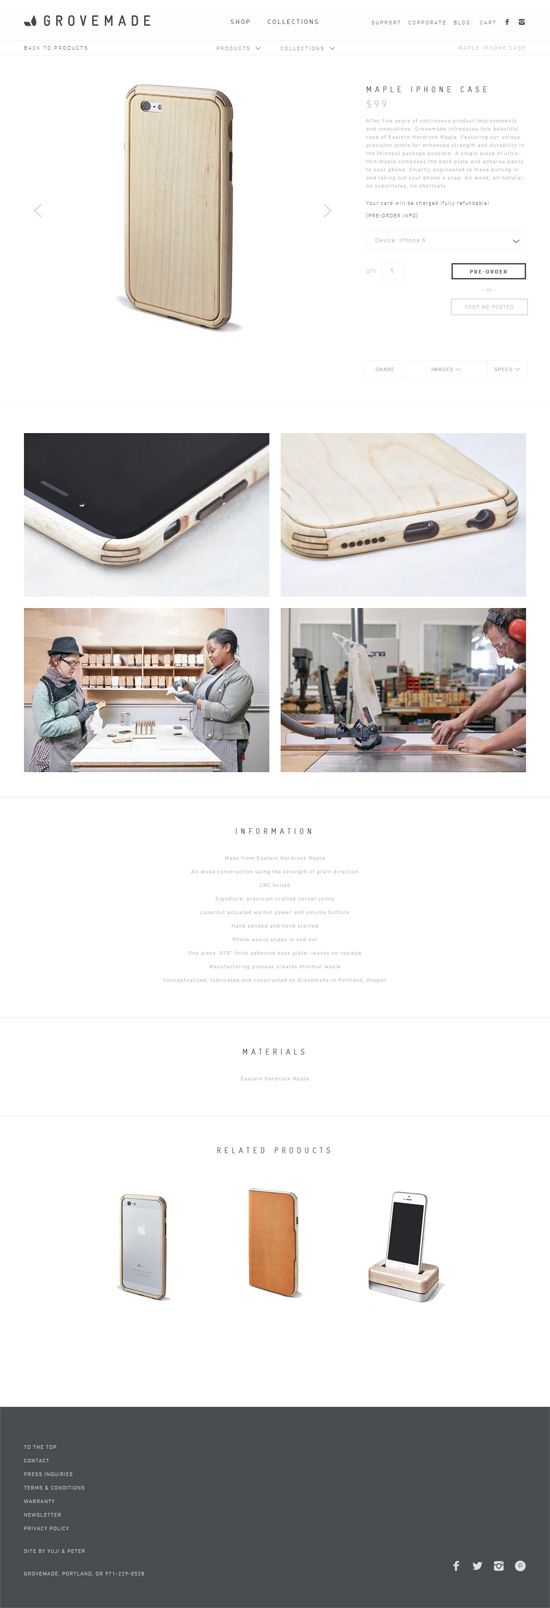 Product page design: Grovemade